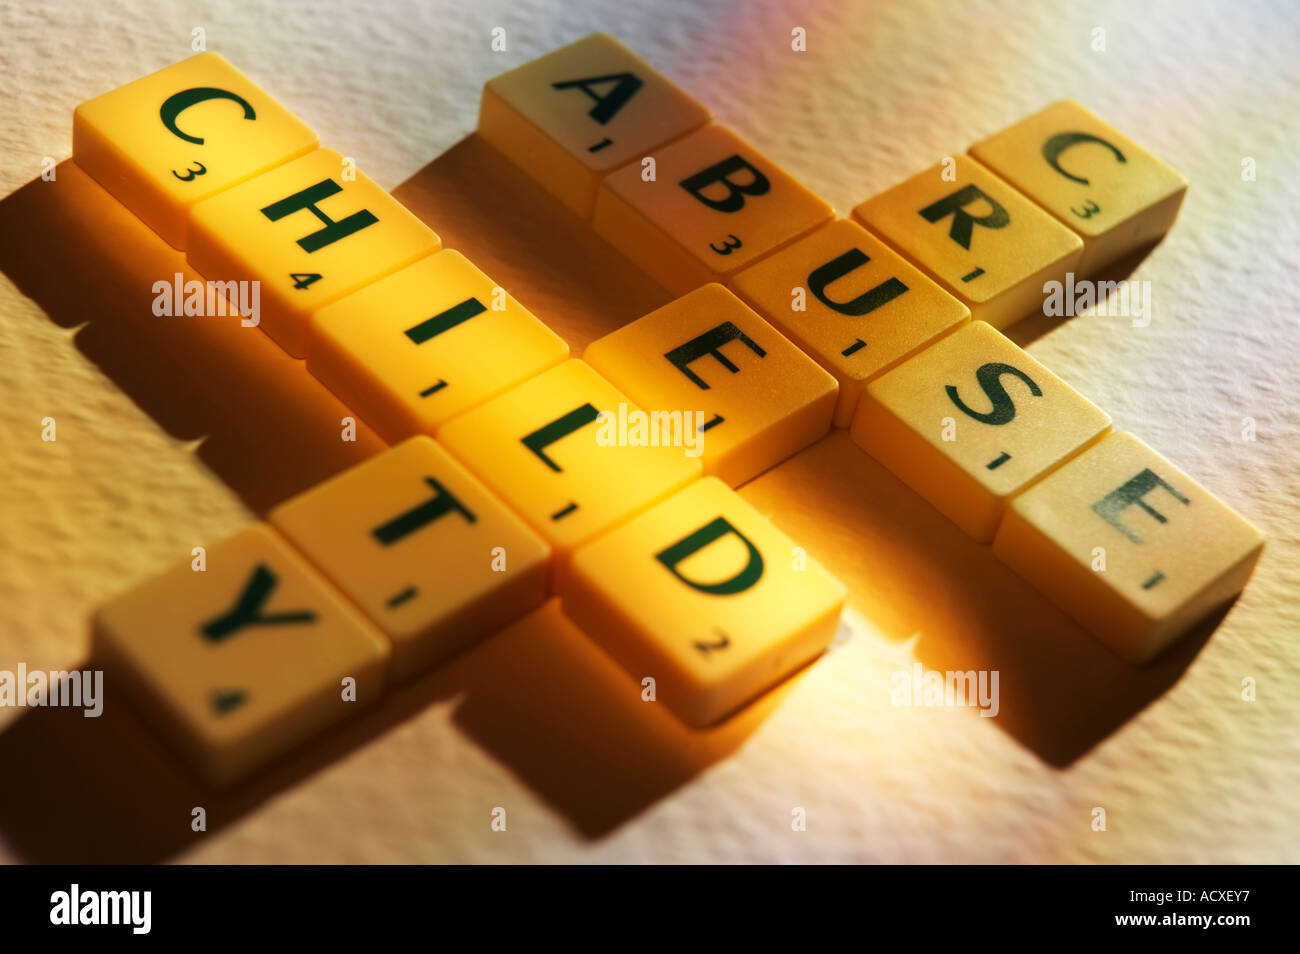 Worksheet Child Spelling scrabble board game letters spelling the words child abuse cruelty cruelty